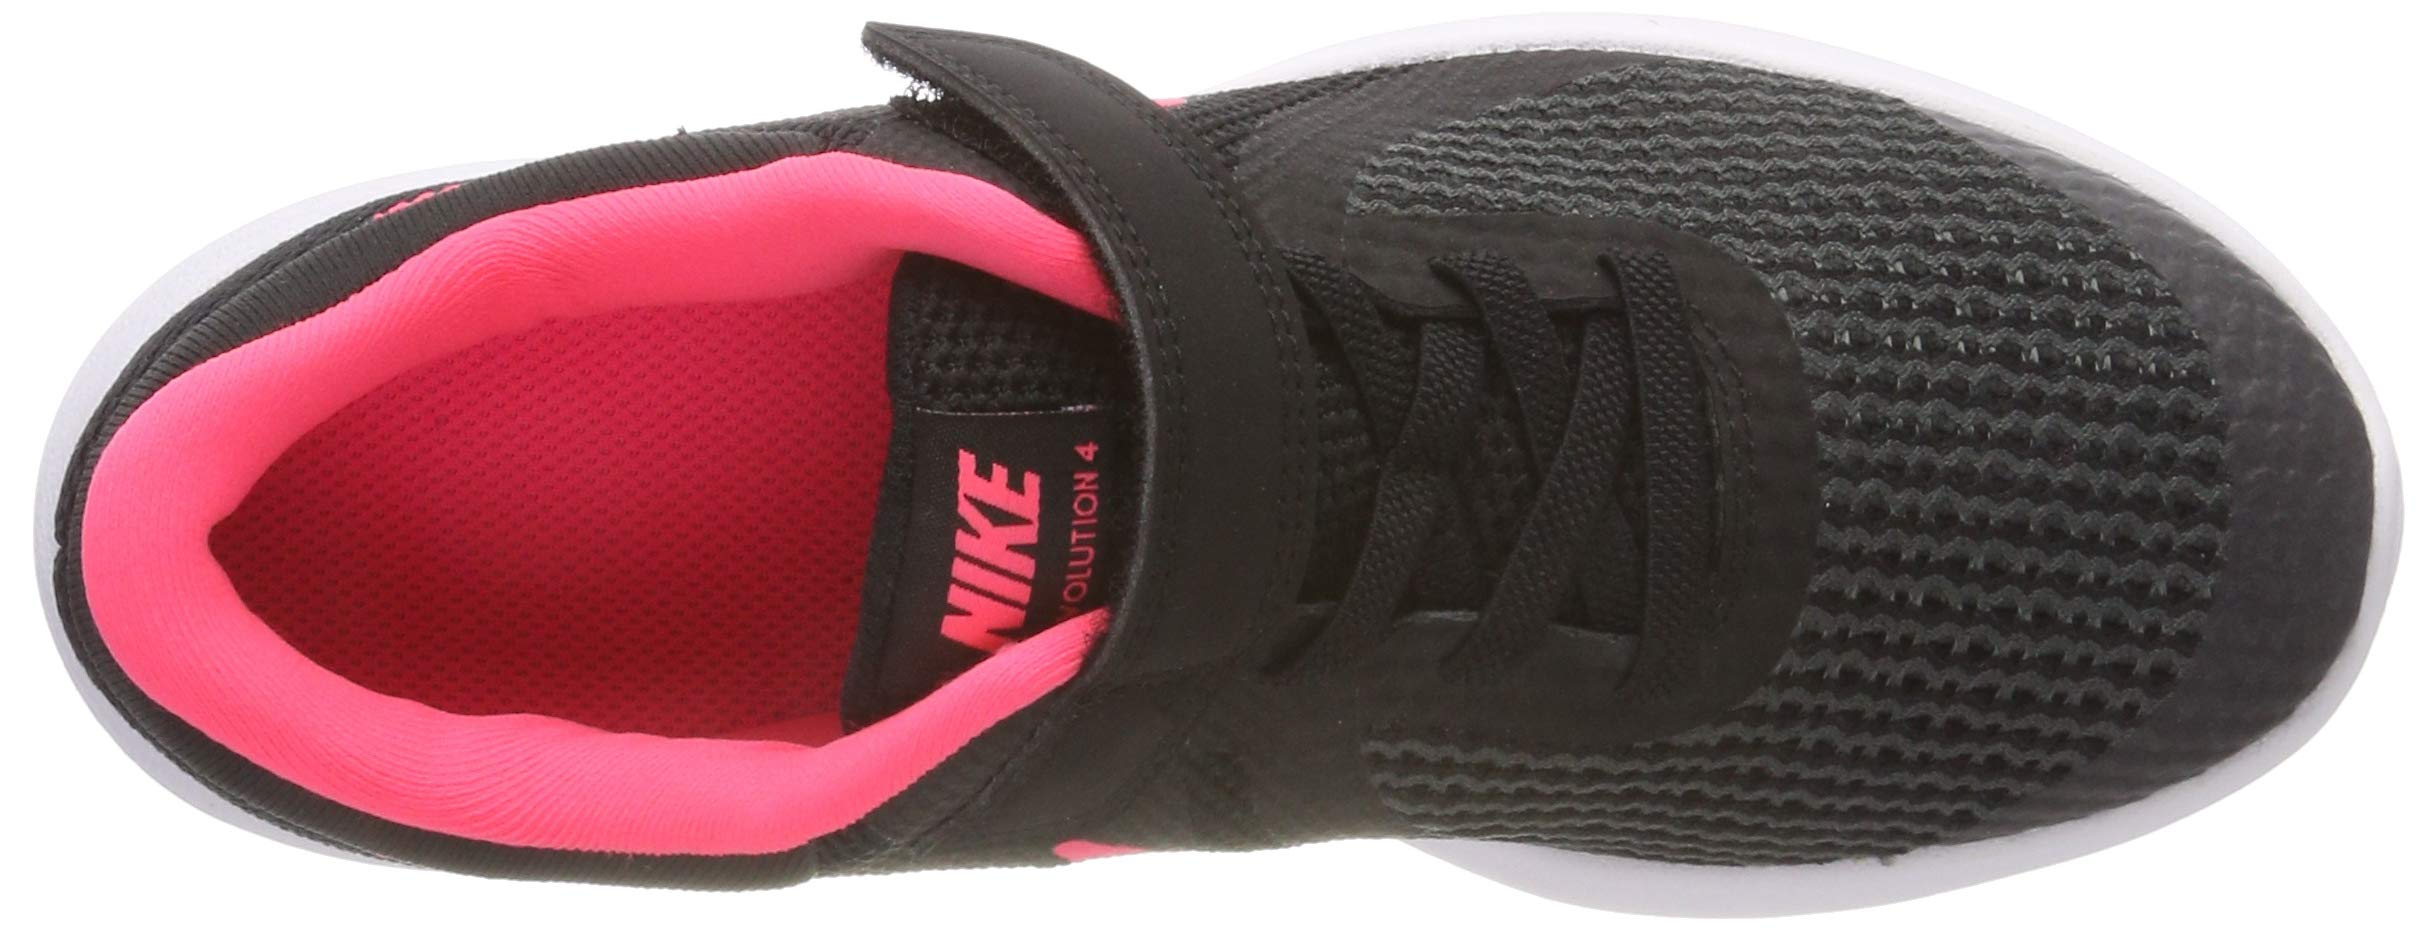 Nike Girls' Revolution 4 (PSV) Running Shoe, Black/Racer Pink - White, 12C Regular US Little Kid by Nike (Image #7)